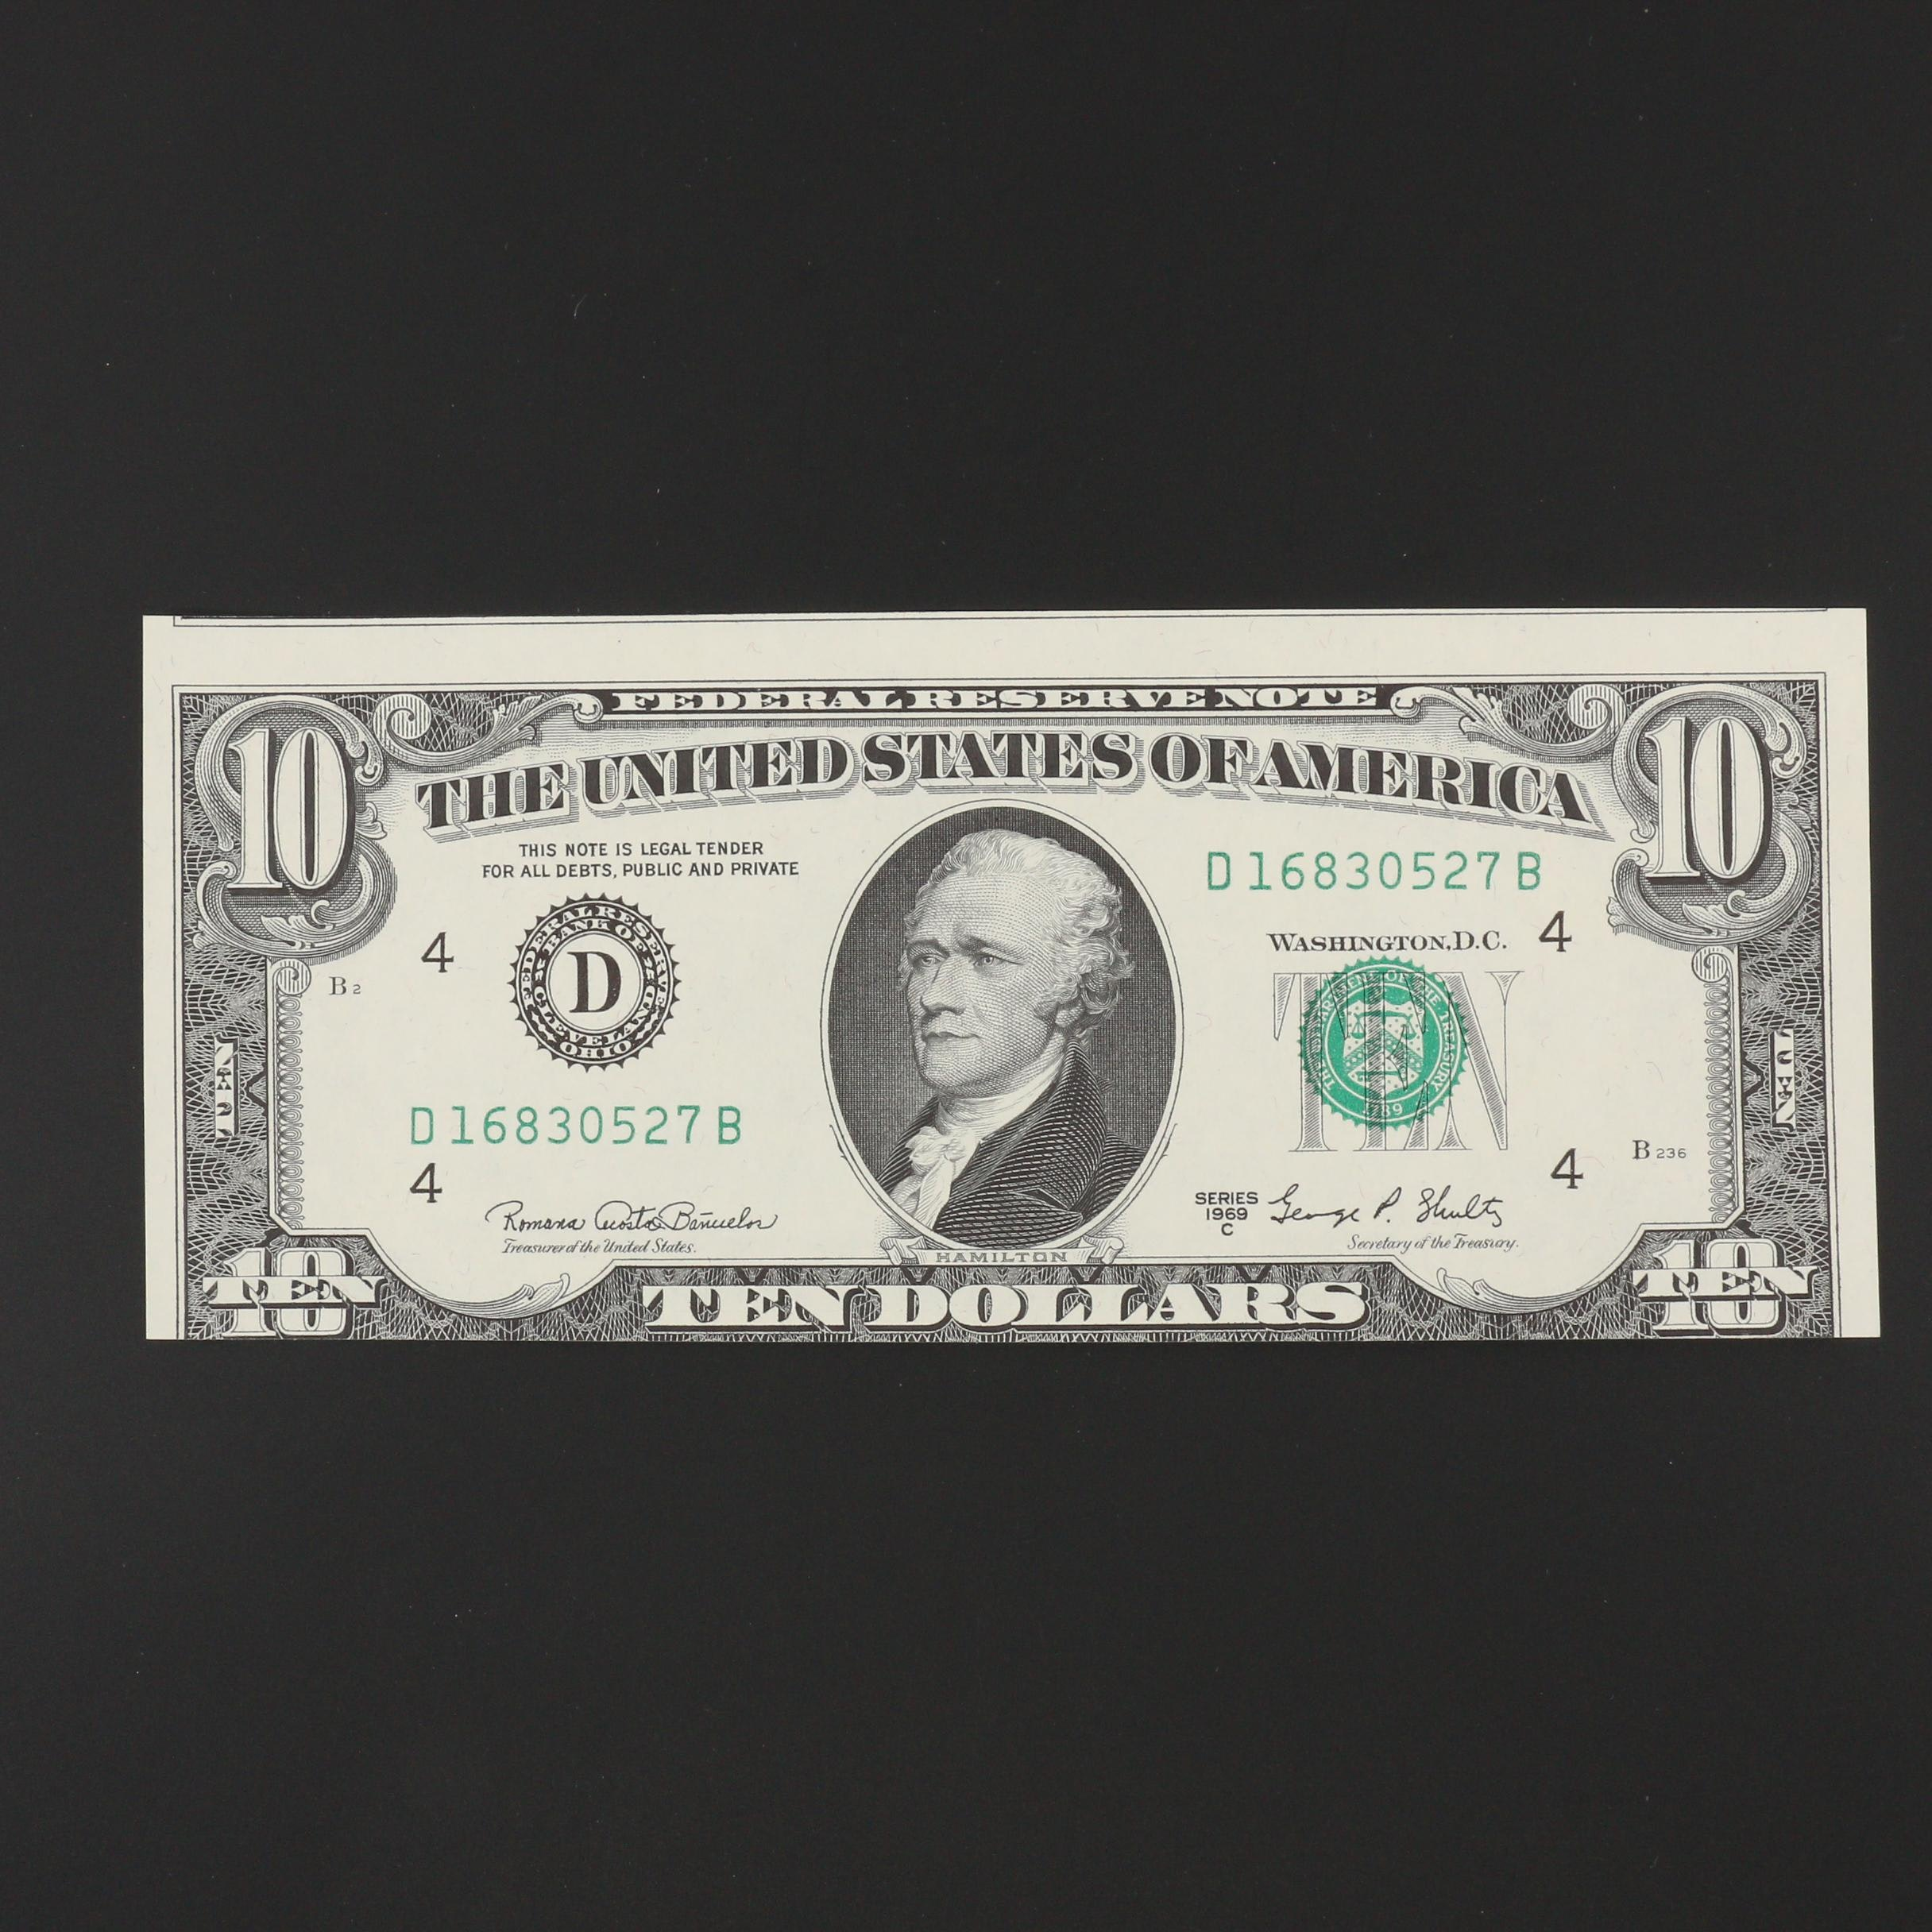 Series of 1969C $10 Mis-Cut Error Federal Reserve Note